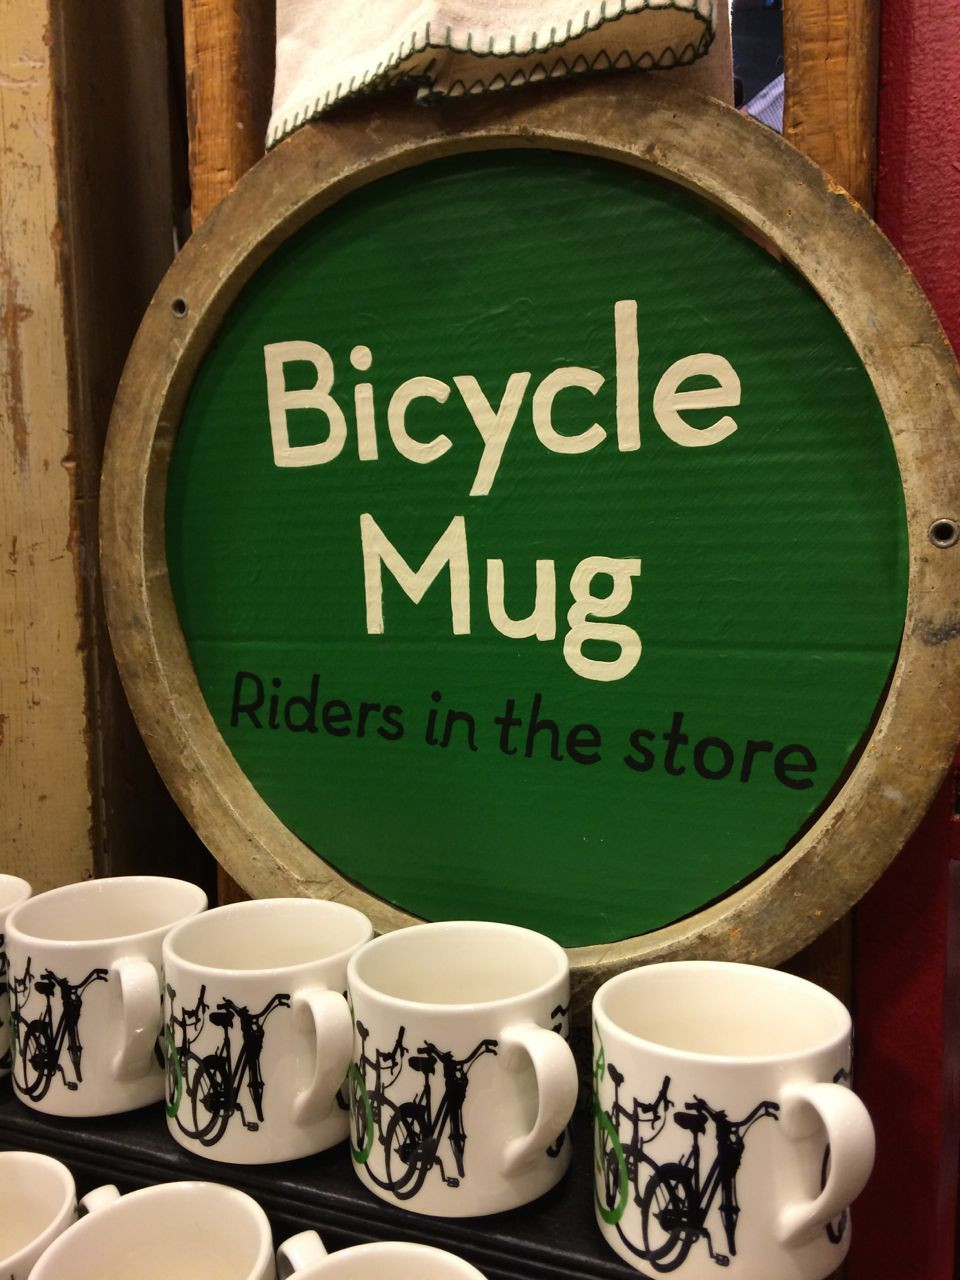 Pick up your own Taliah Lempert Bicycle Mug at Fishs Eddy